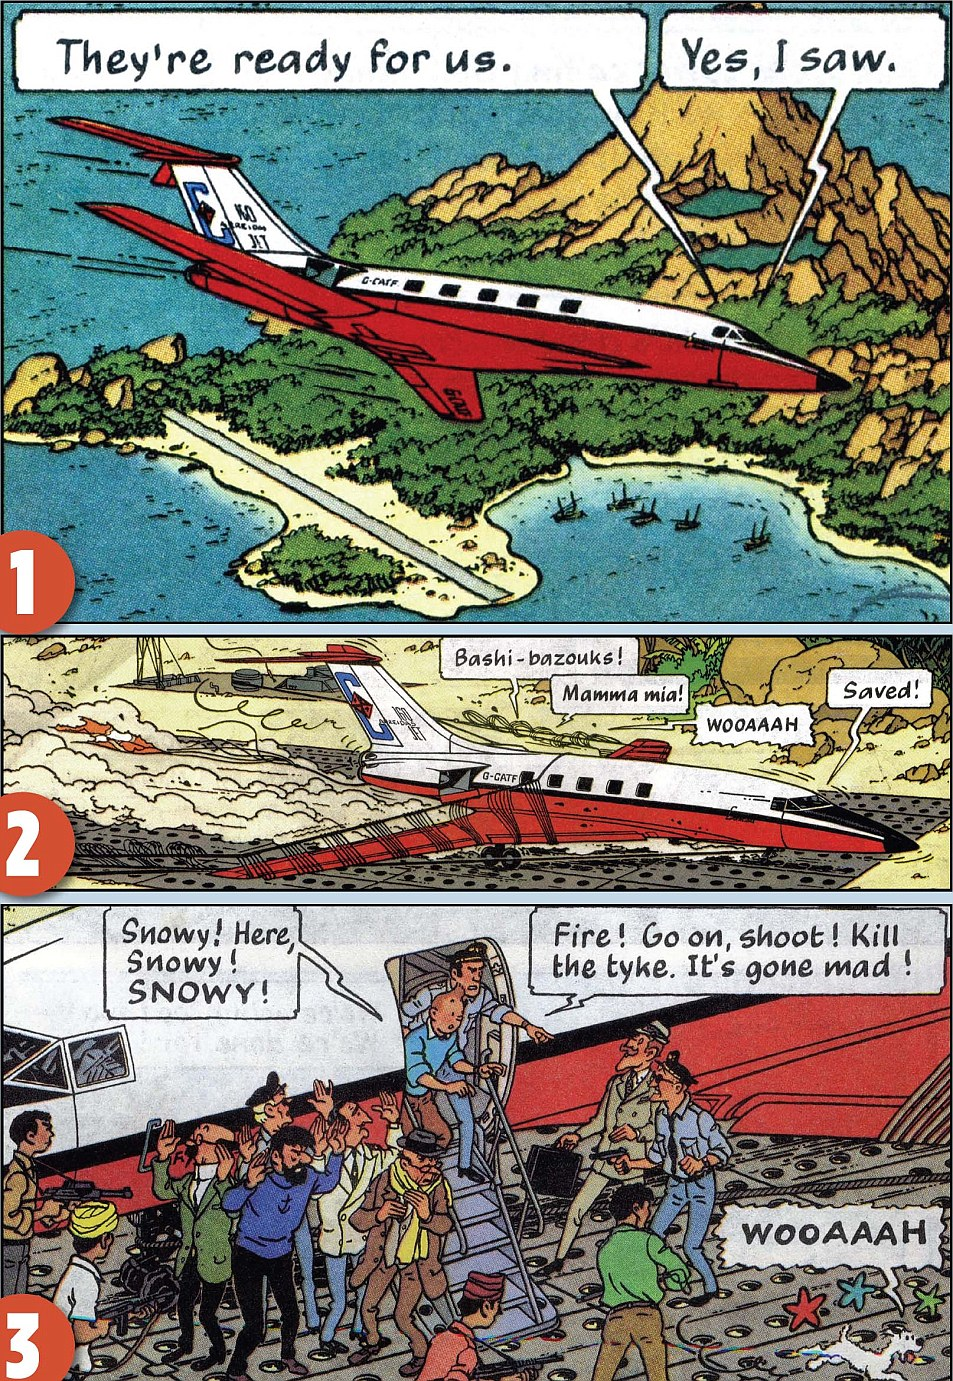 Similar: A Tintin plot line about a disappearing jet